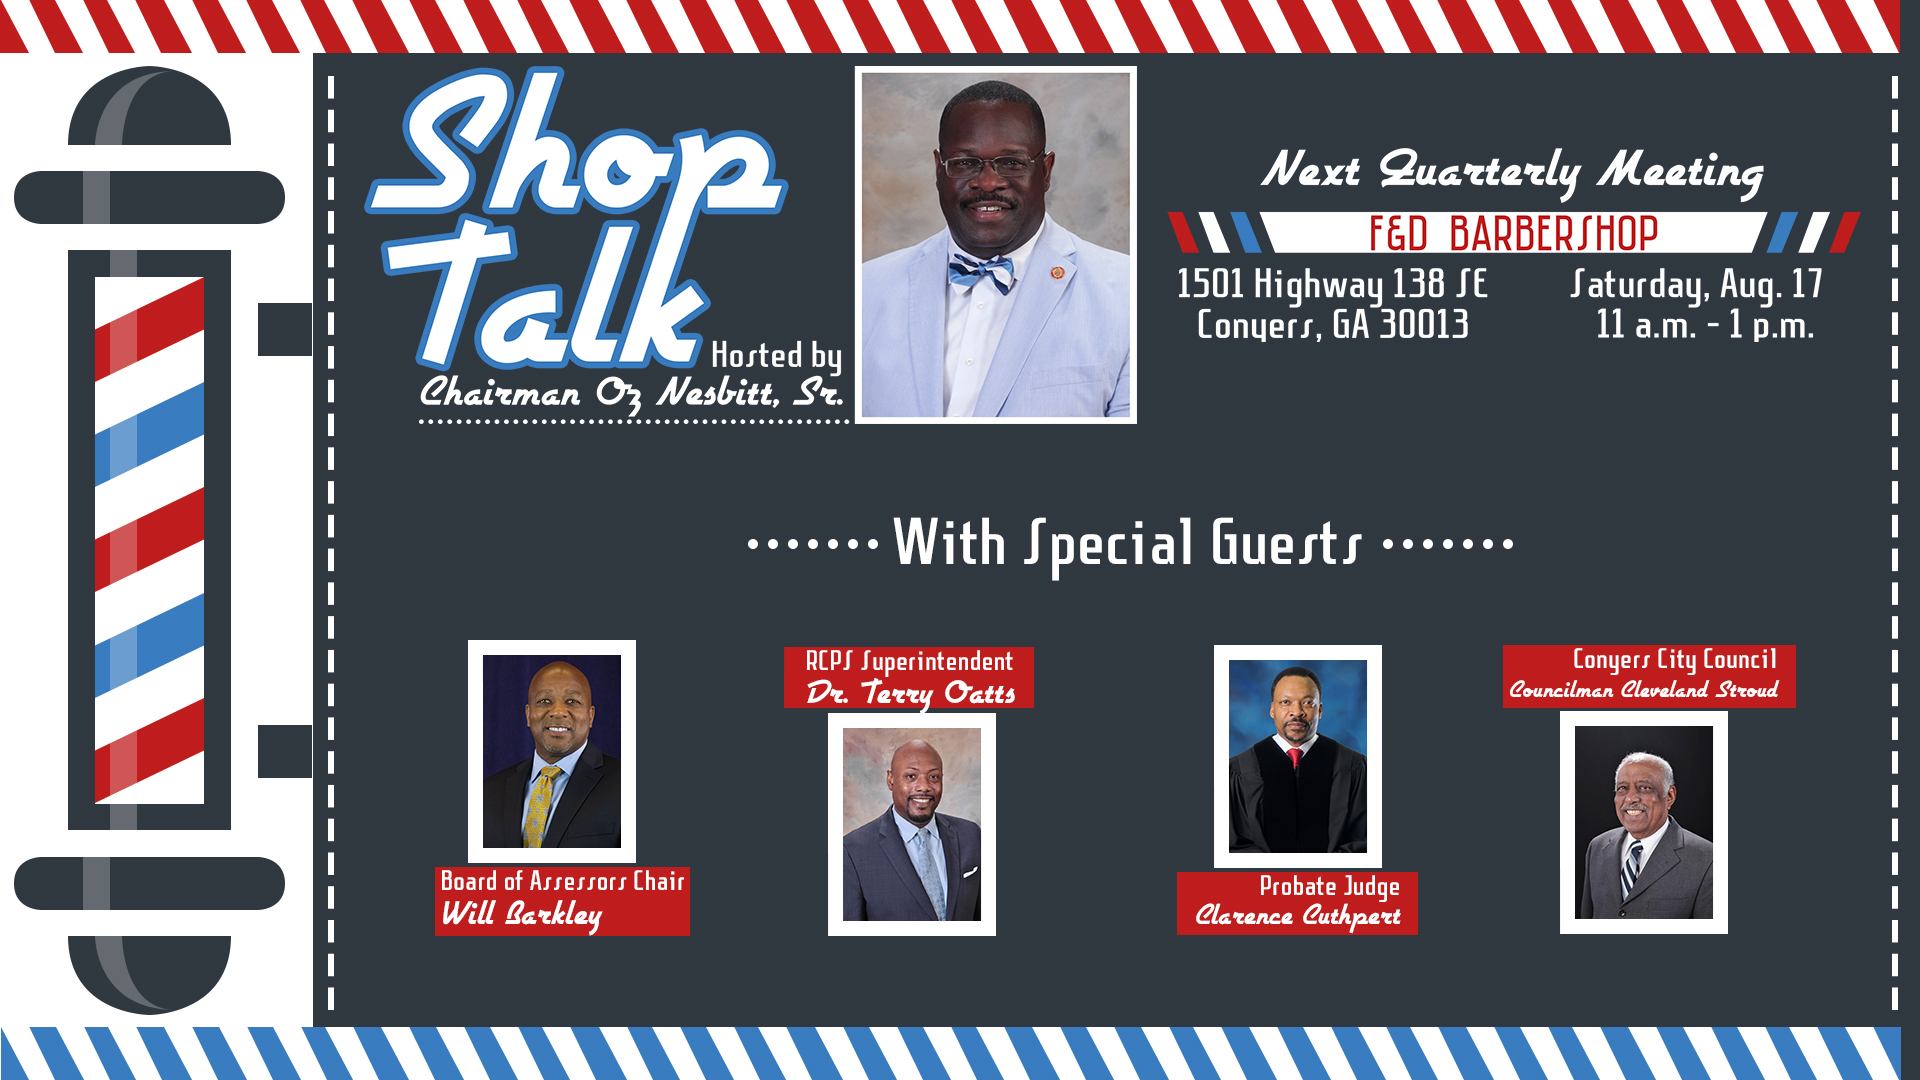 Shop Talk #3 @ F&D Barbershop